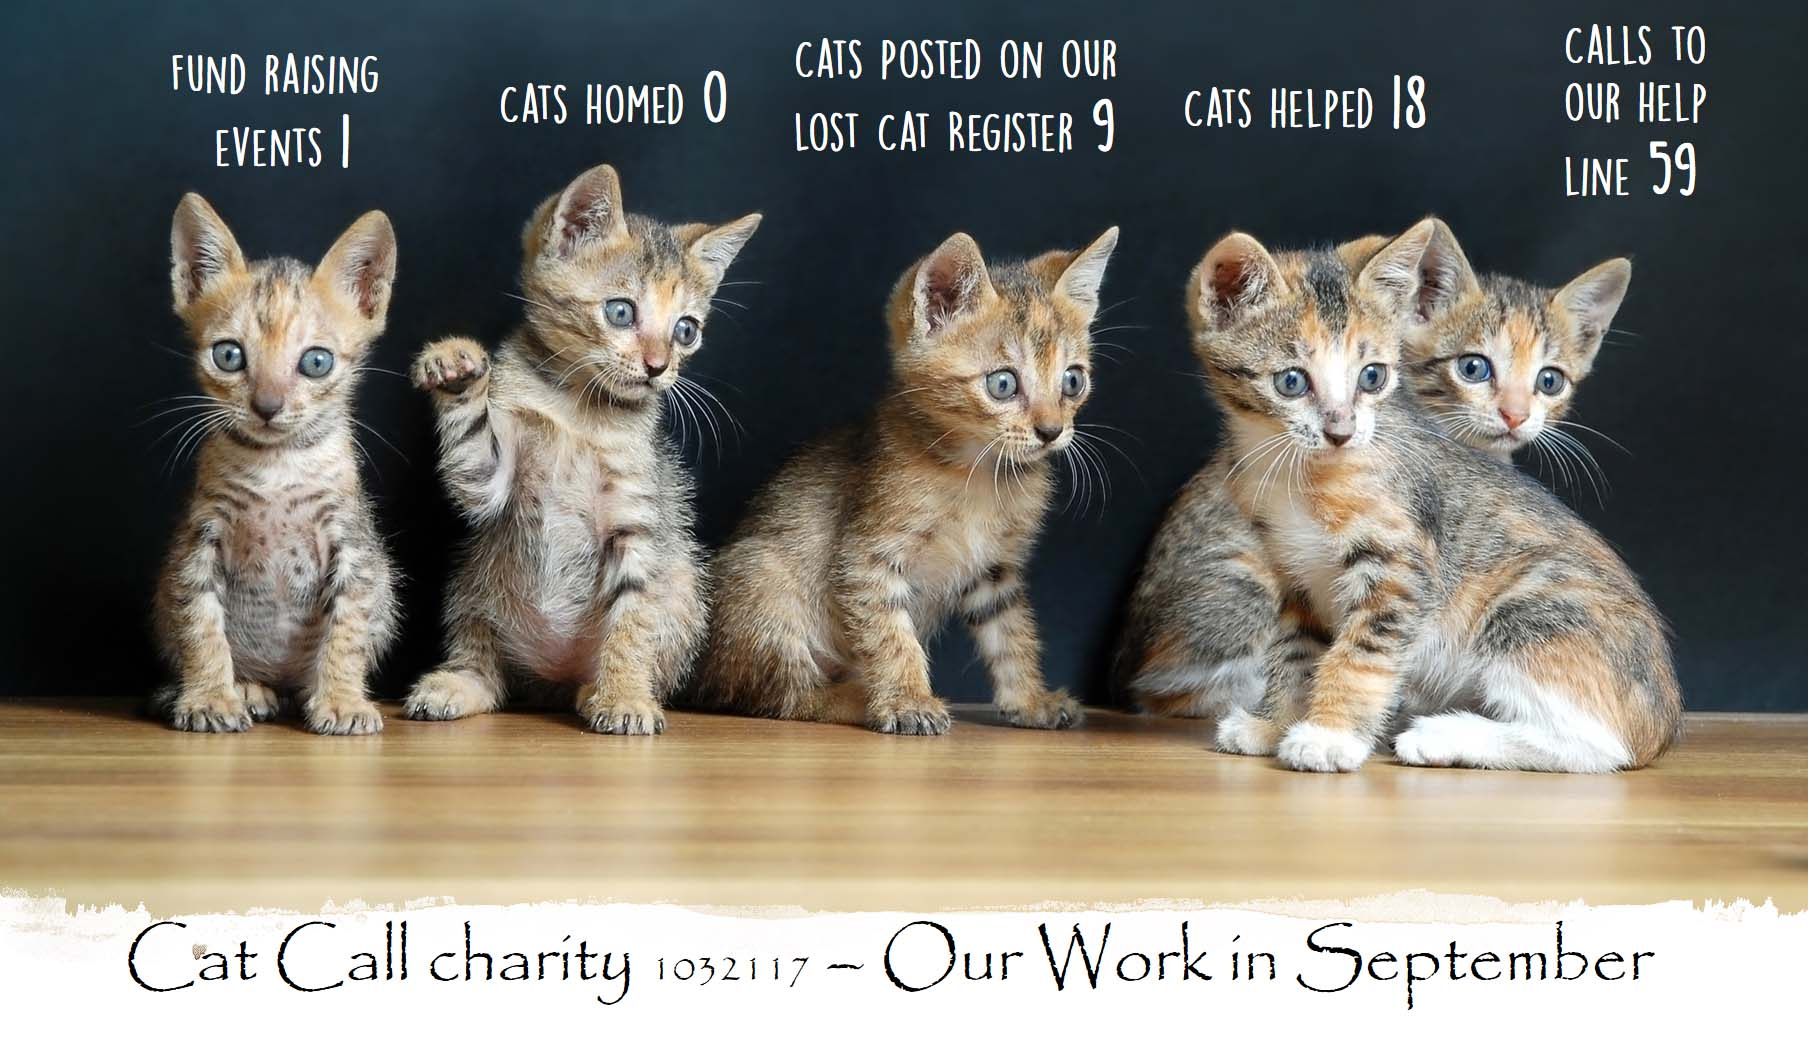 Cat Call Charity - Our work in September